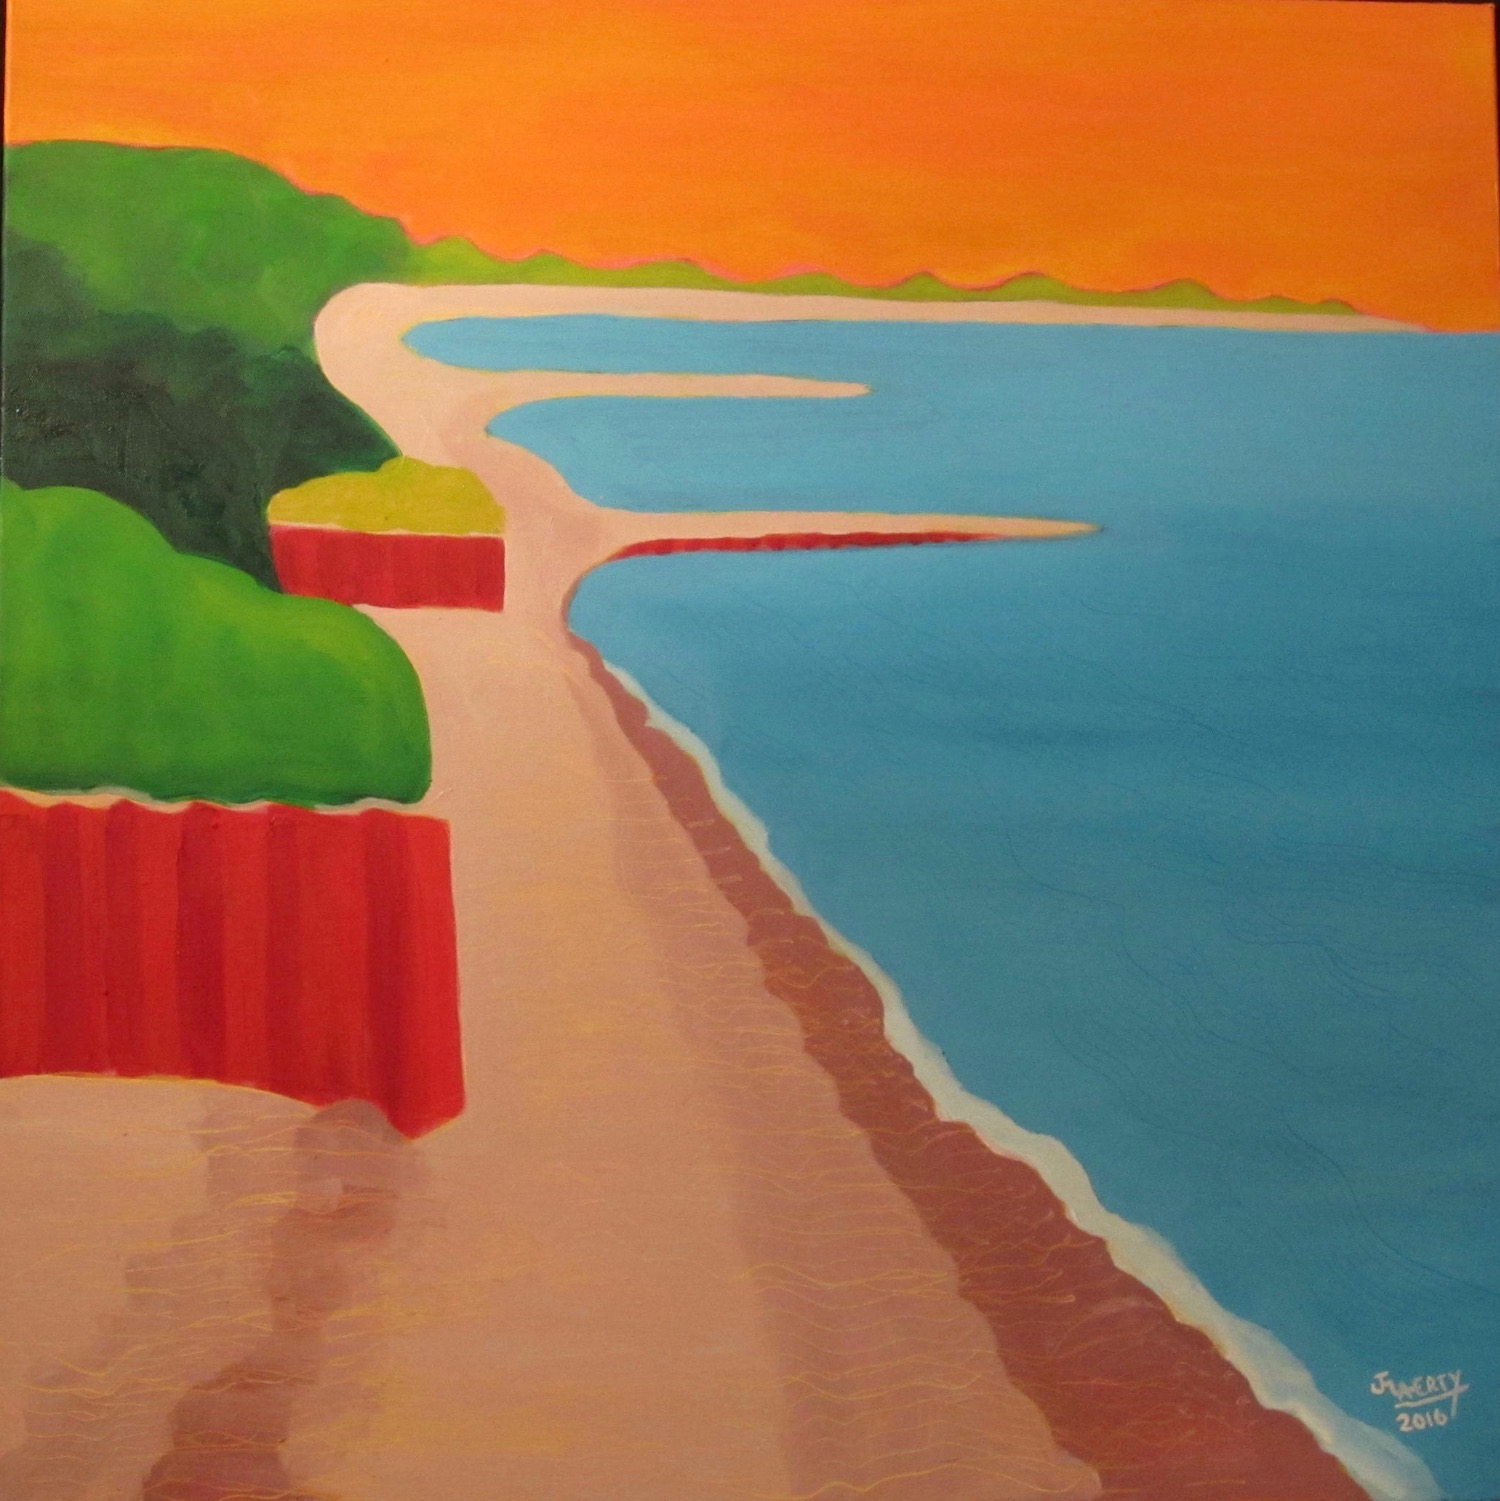 Red Seawalls Under Marmalade Sky - Oil on Canvas30 x 30Now residing in Portsmouth, NH with Allison